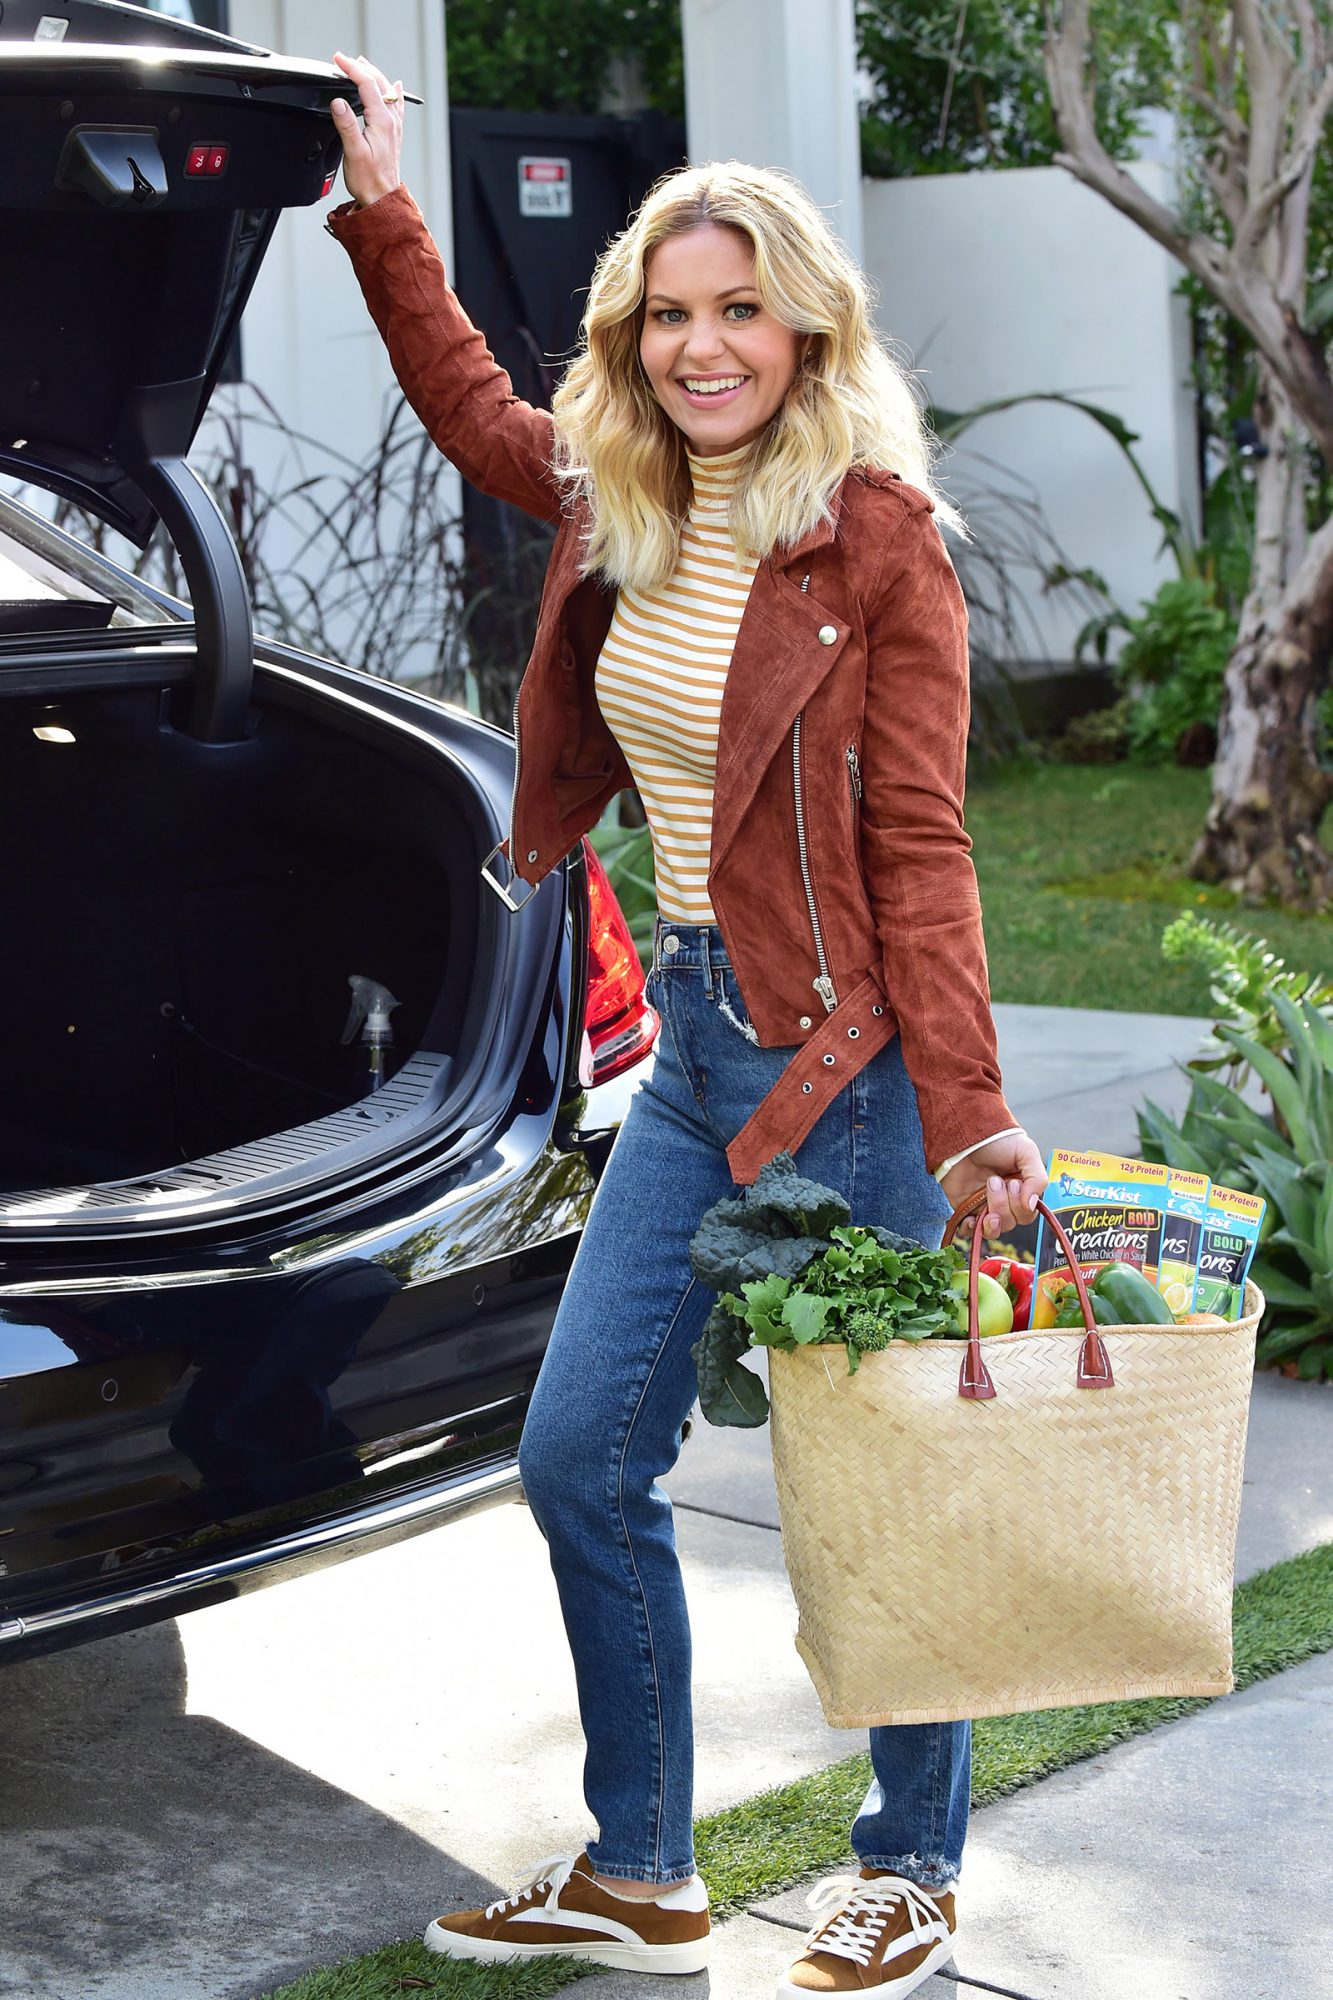 Candace Cameron Bure Returns Home From a Grocery Run